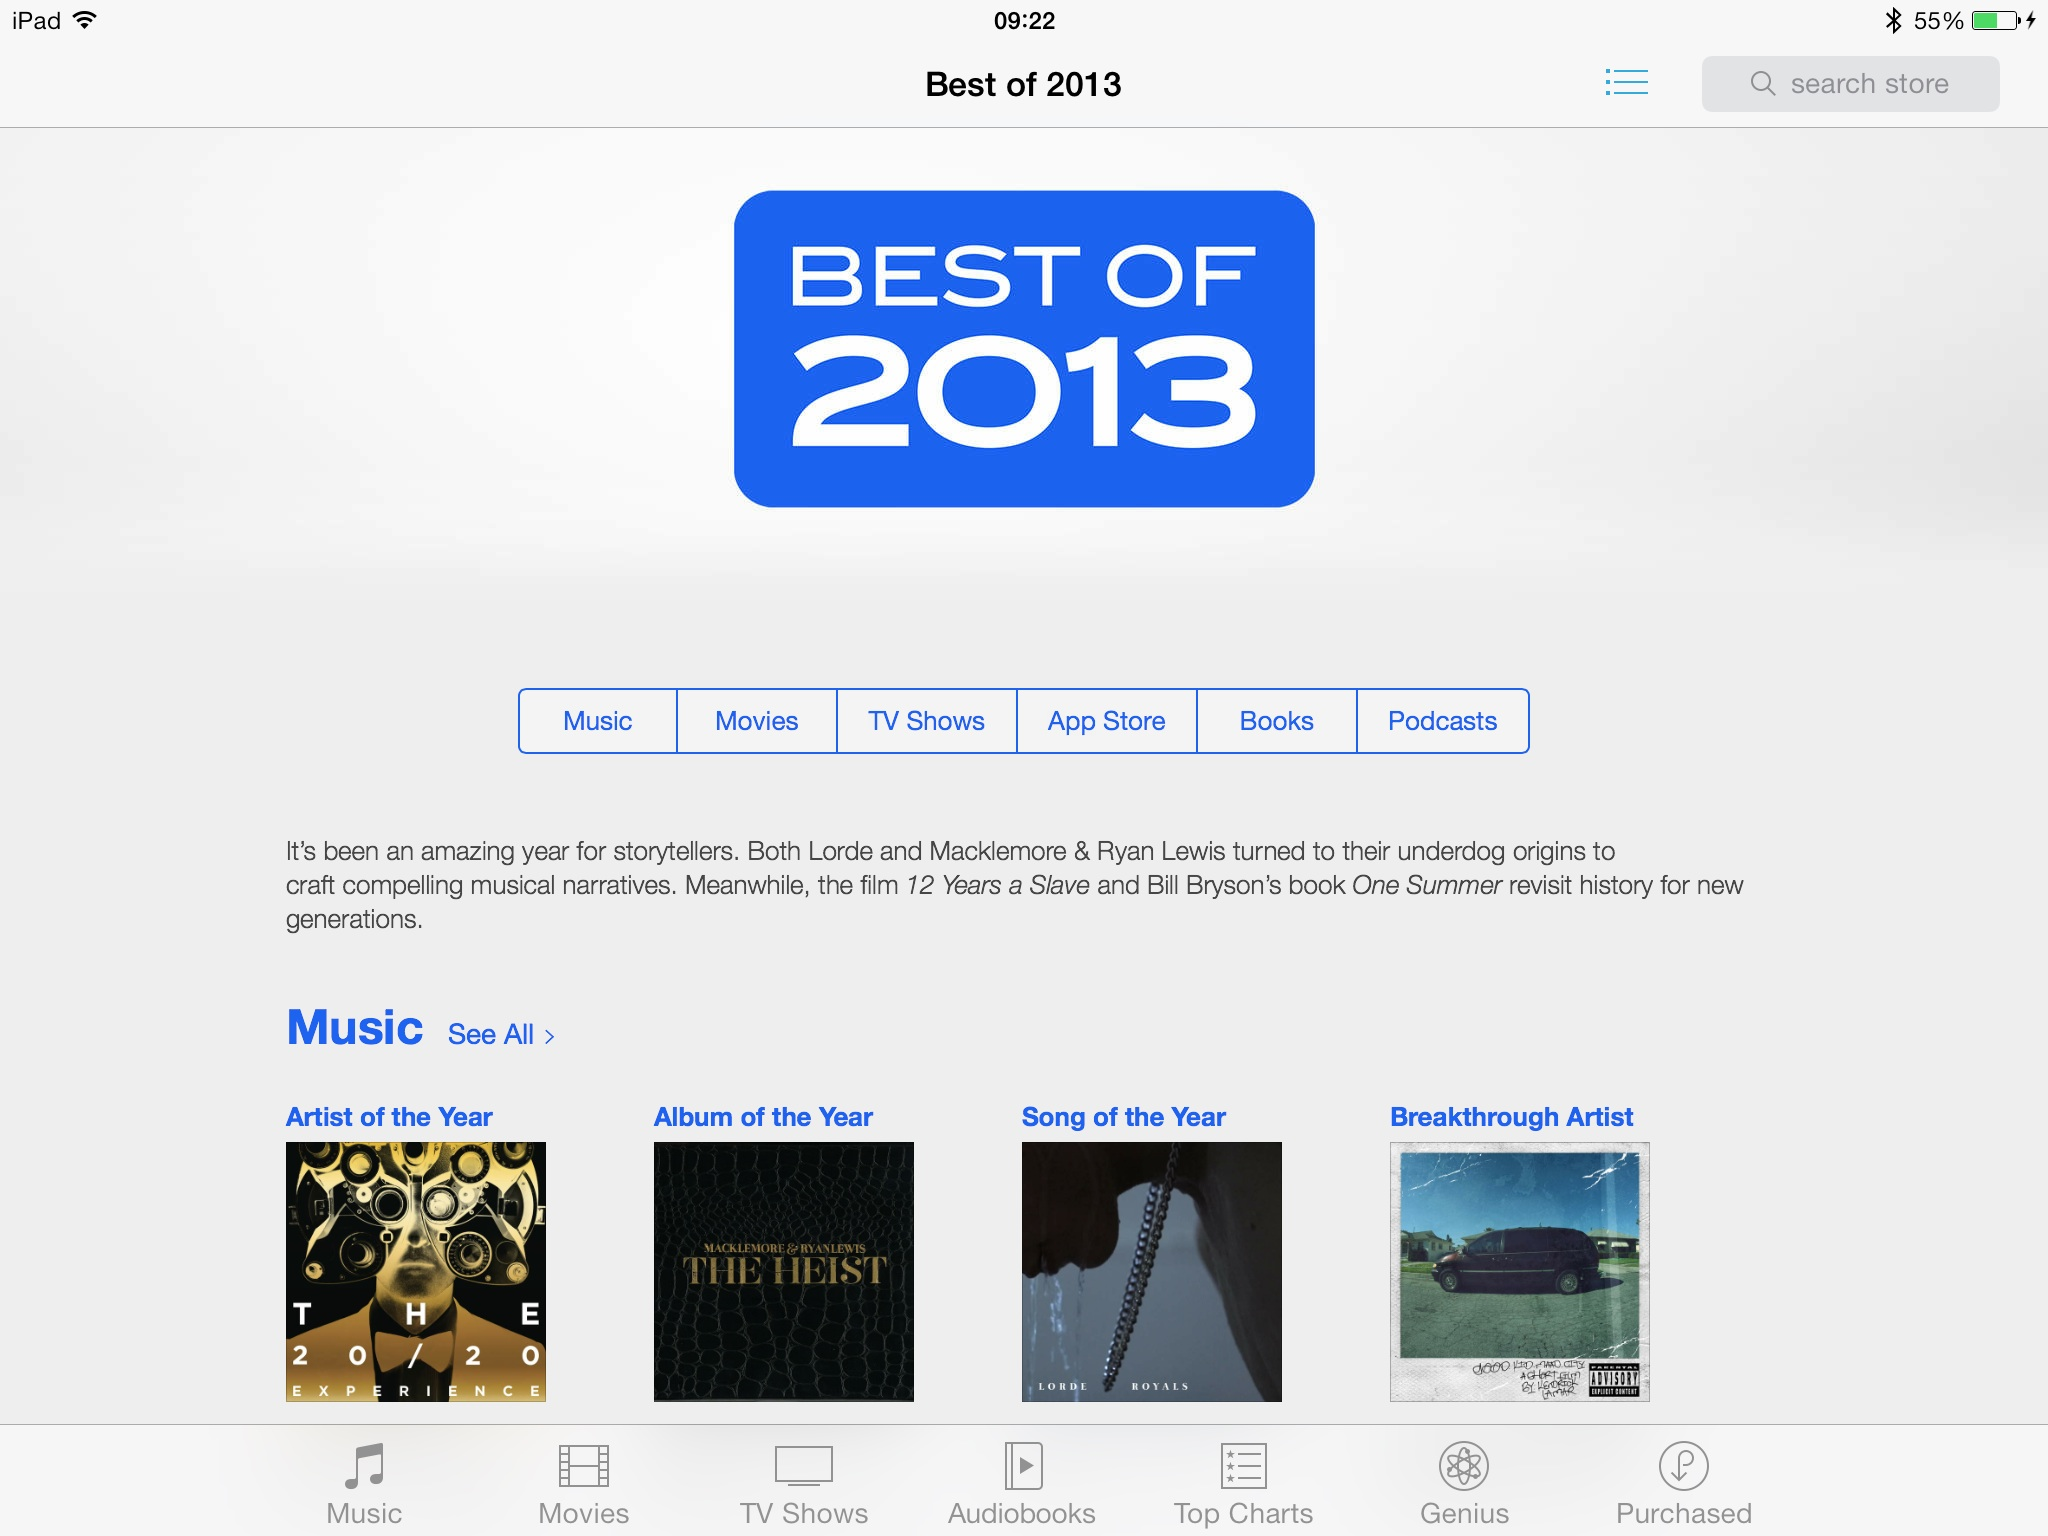 Apple Unveils Best iOS Apps Of 2013: Duolingo And Disney Animated Take No. 1 Spots